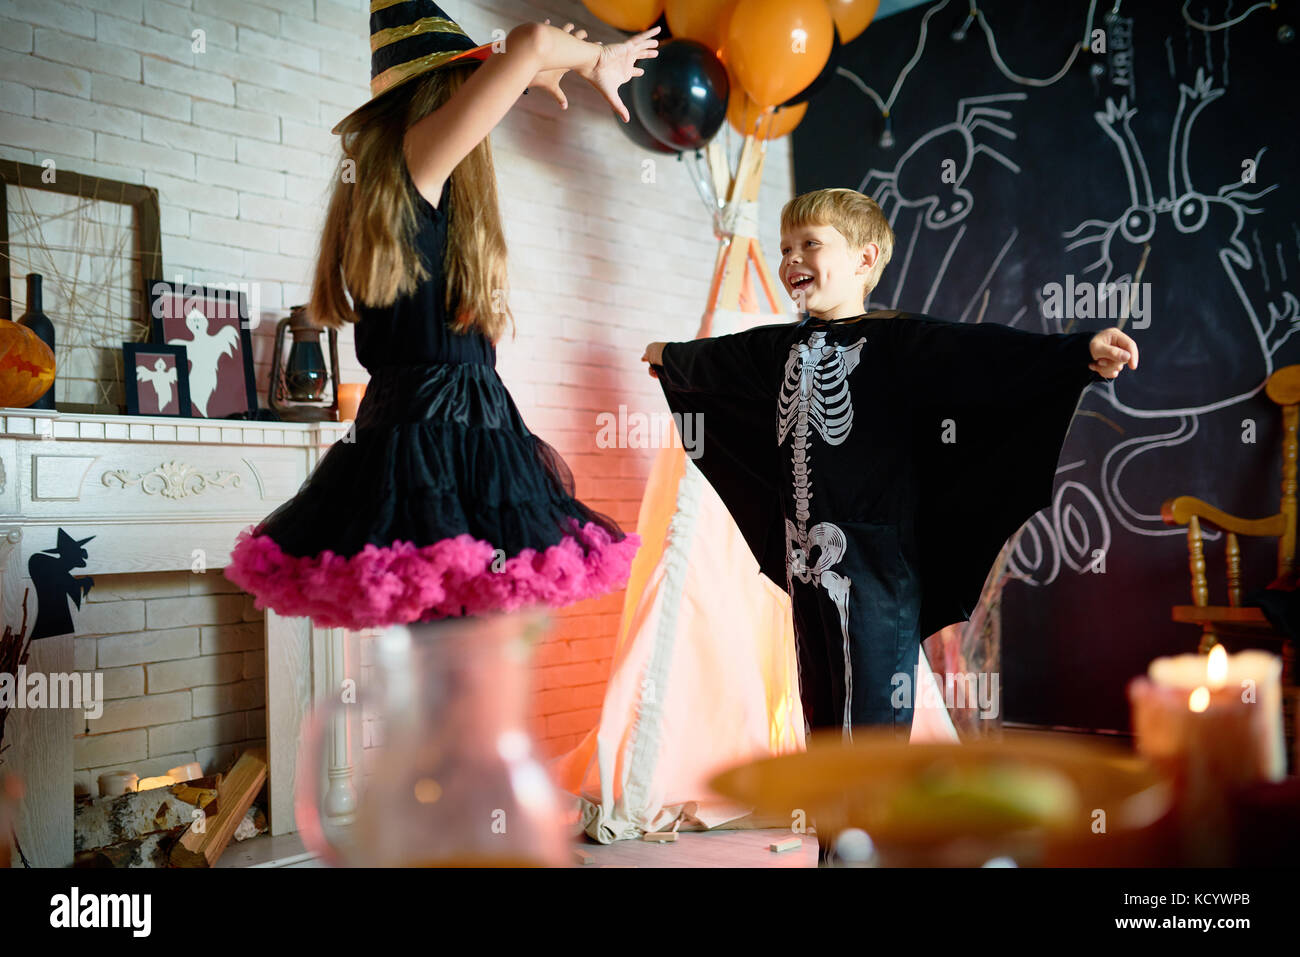 Cheerful children wearing Halloween costumes holding rehearsal before taking part in trick-or-treating, interior - Stock Image